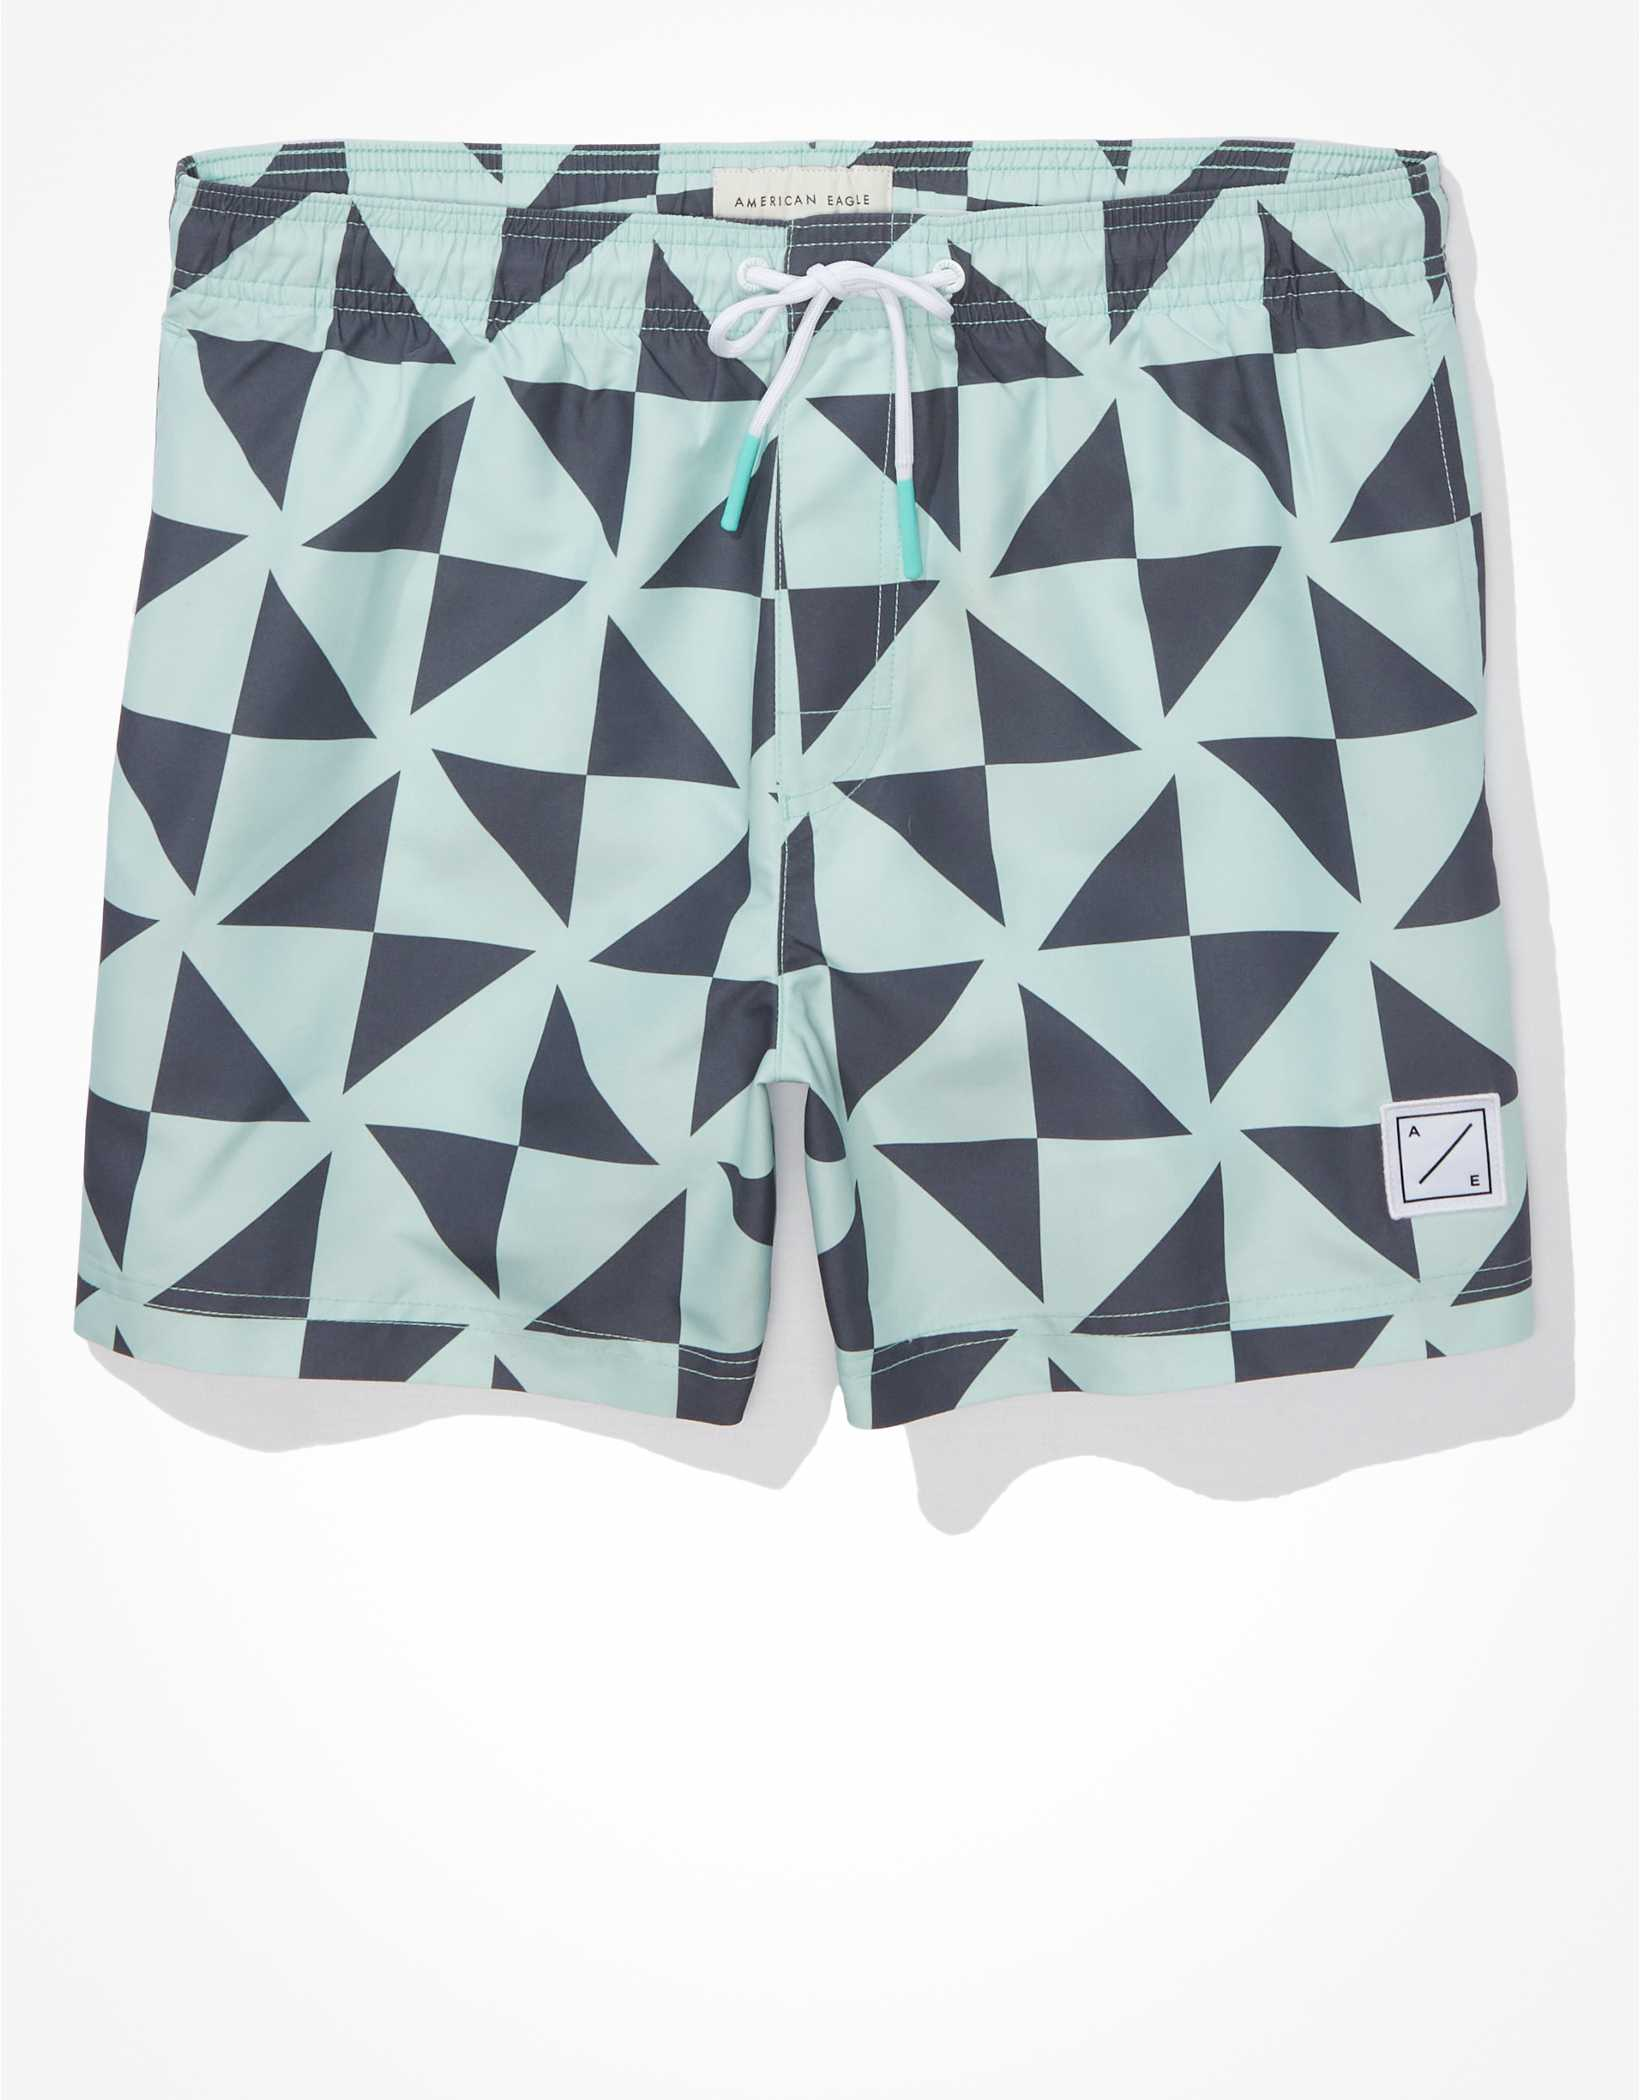 .97 AE 5″ Geo Swim Trunk + Free shipping over  at American Eagle!